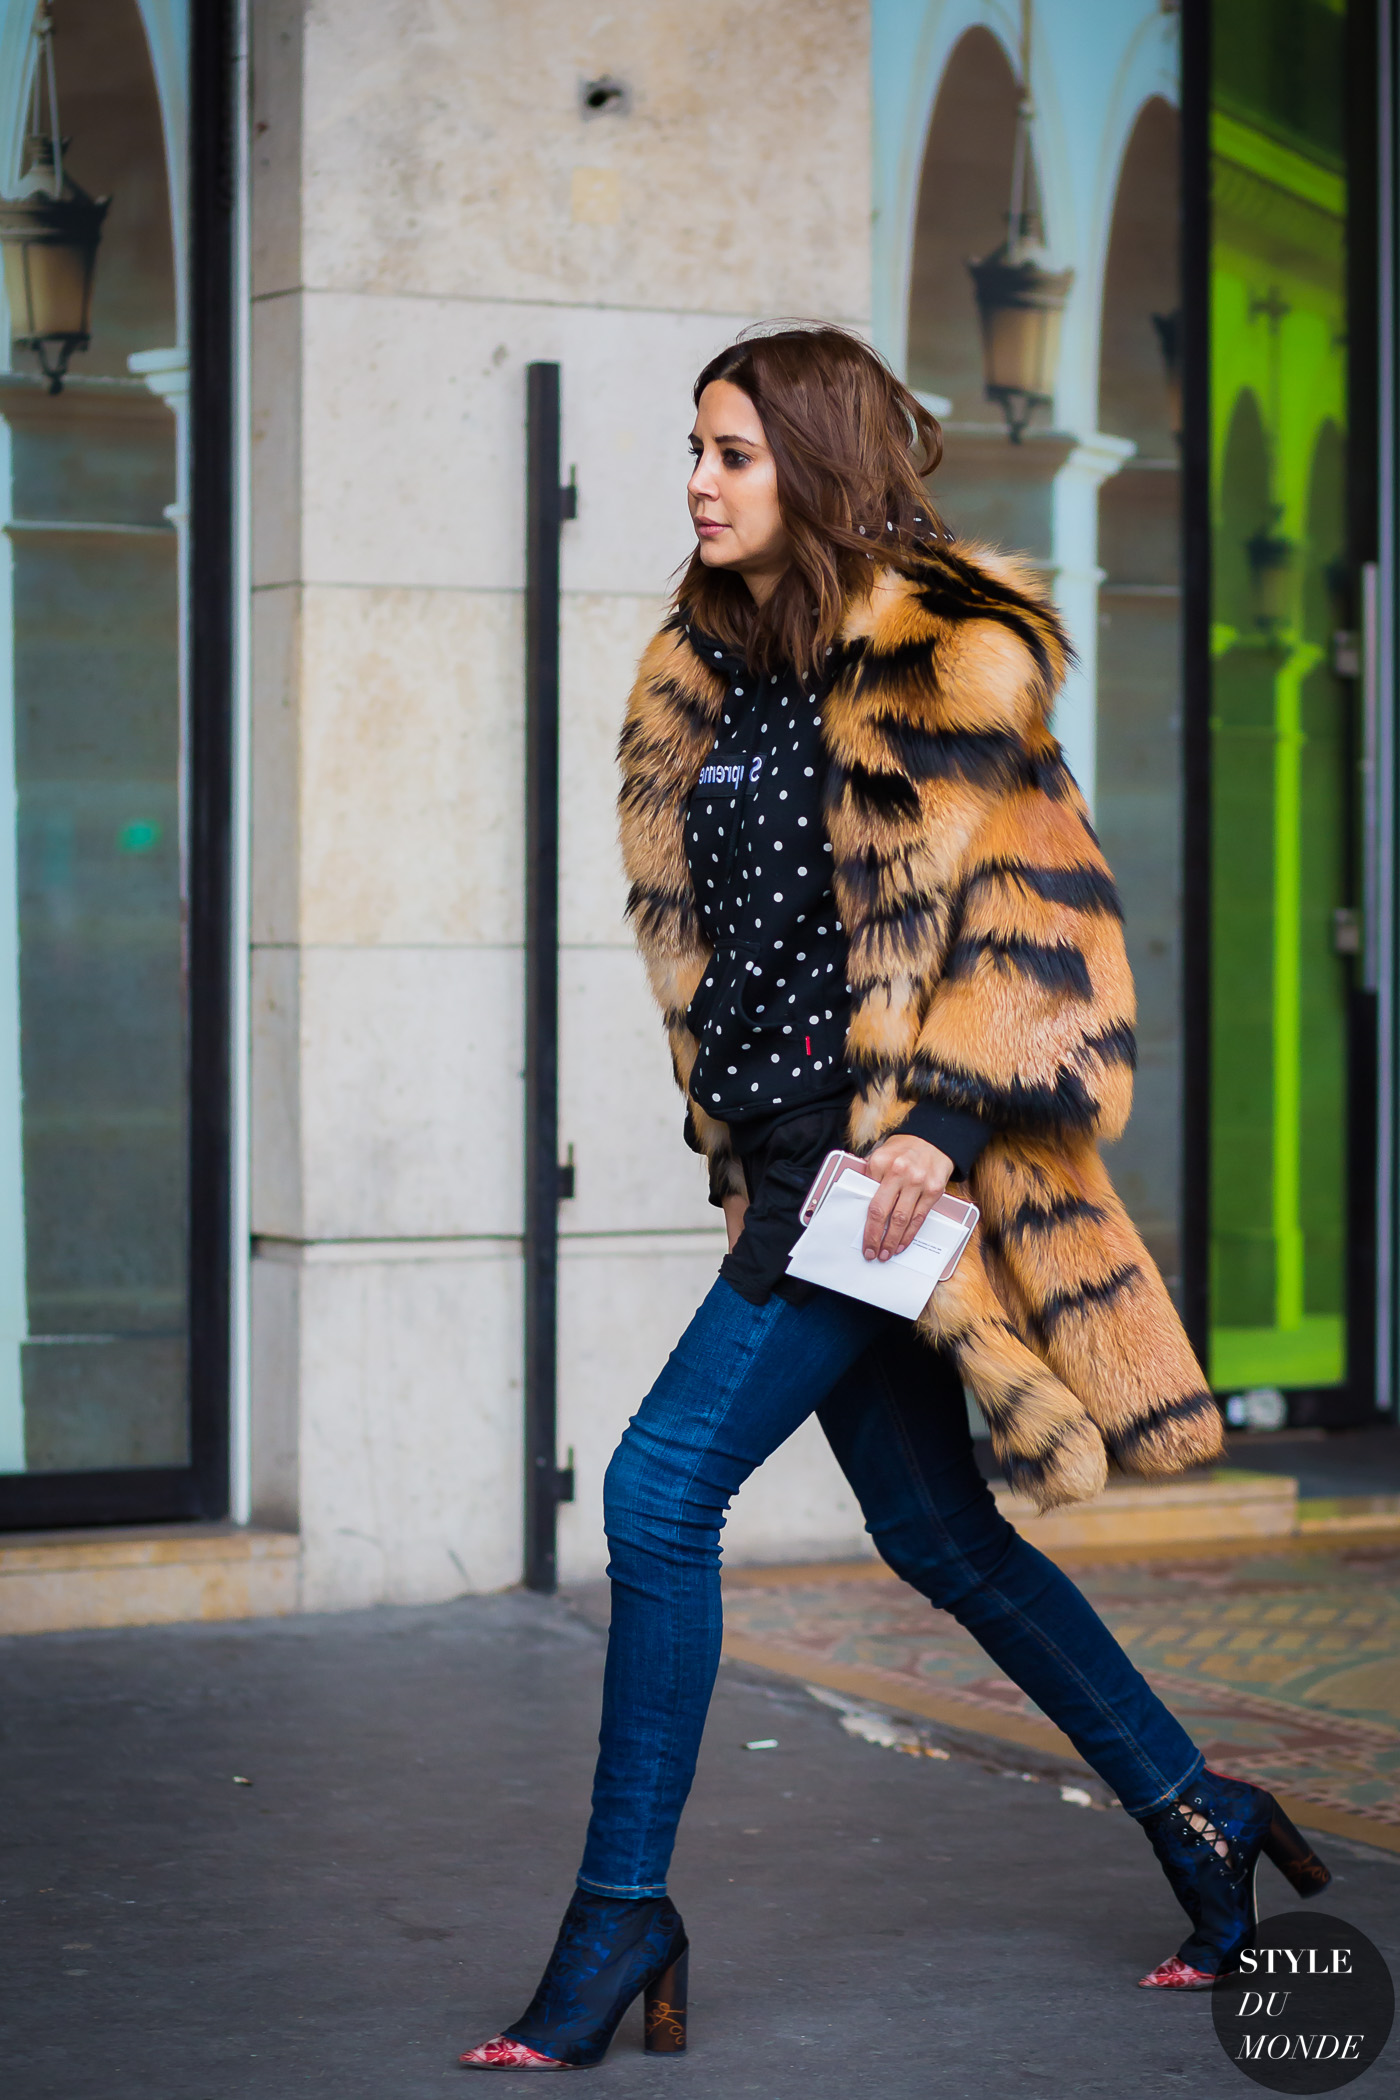 christine-centenera-by-styledumonde-street-style-fashion-photography